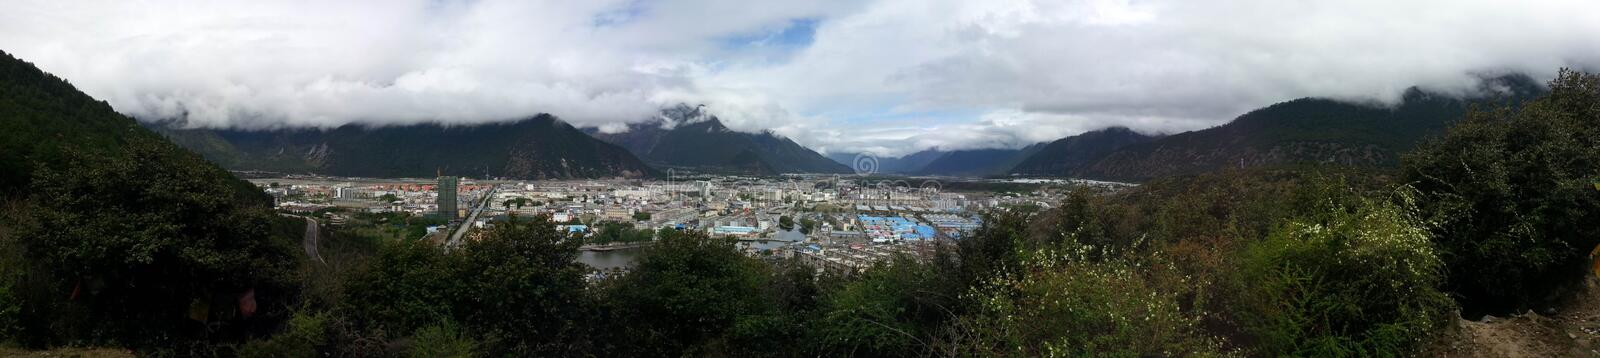 Panoramic view overlooking the nyingchi bayi town stock image